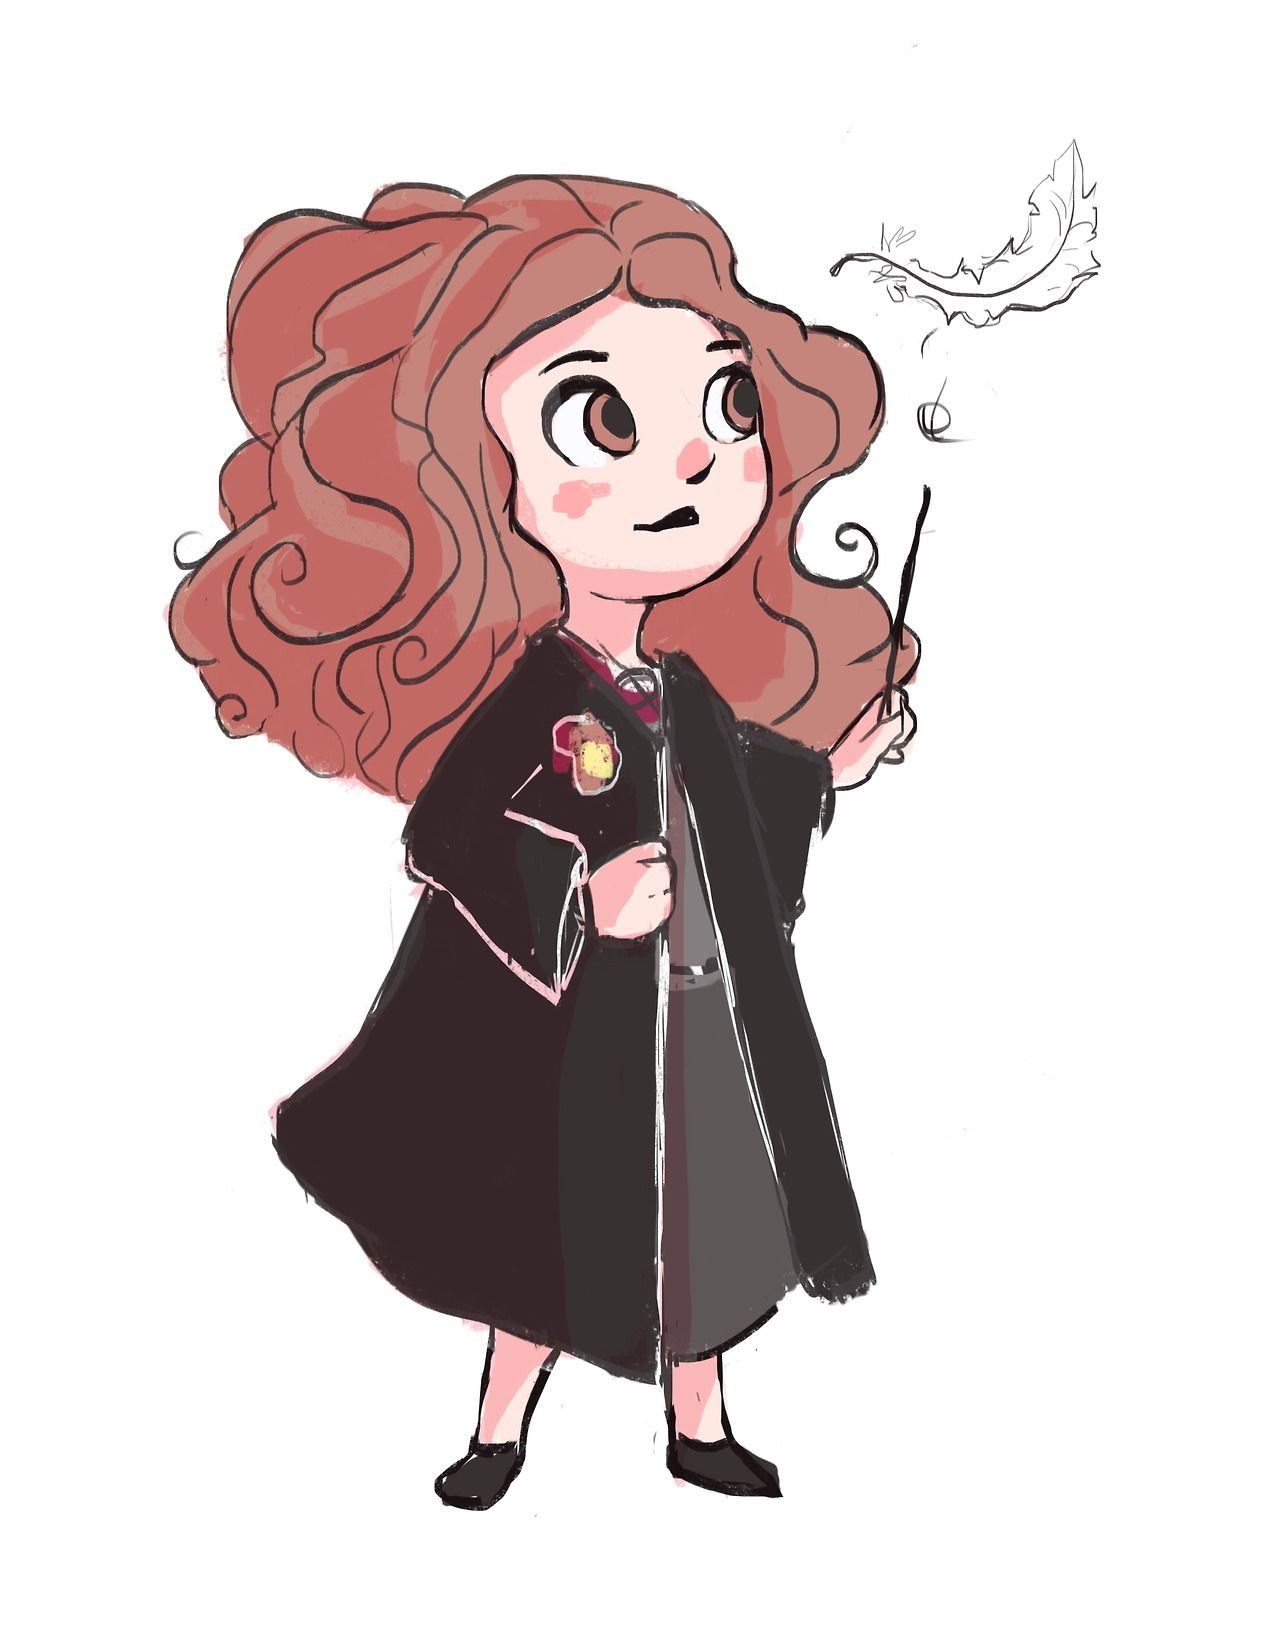 Épinglé Par Pushpa Sinha Sur Harry Potter | Dessin Harry serapportantà Dessin D Harry Potter